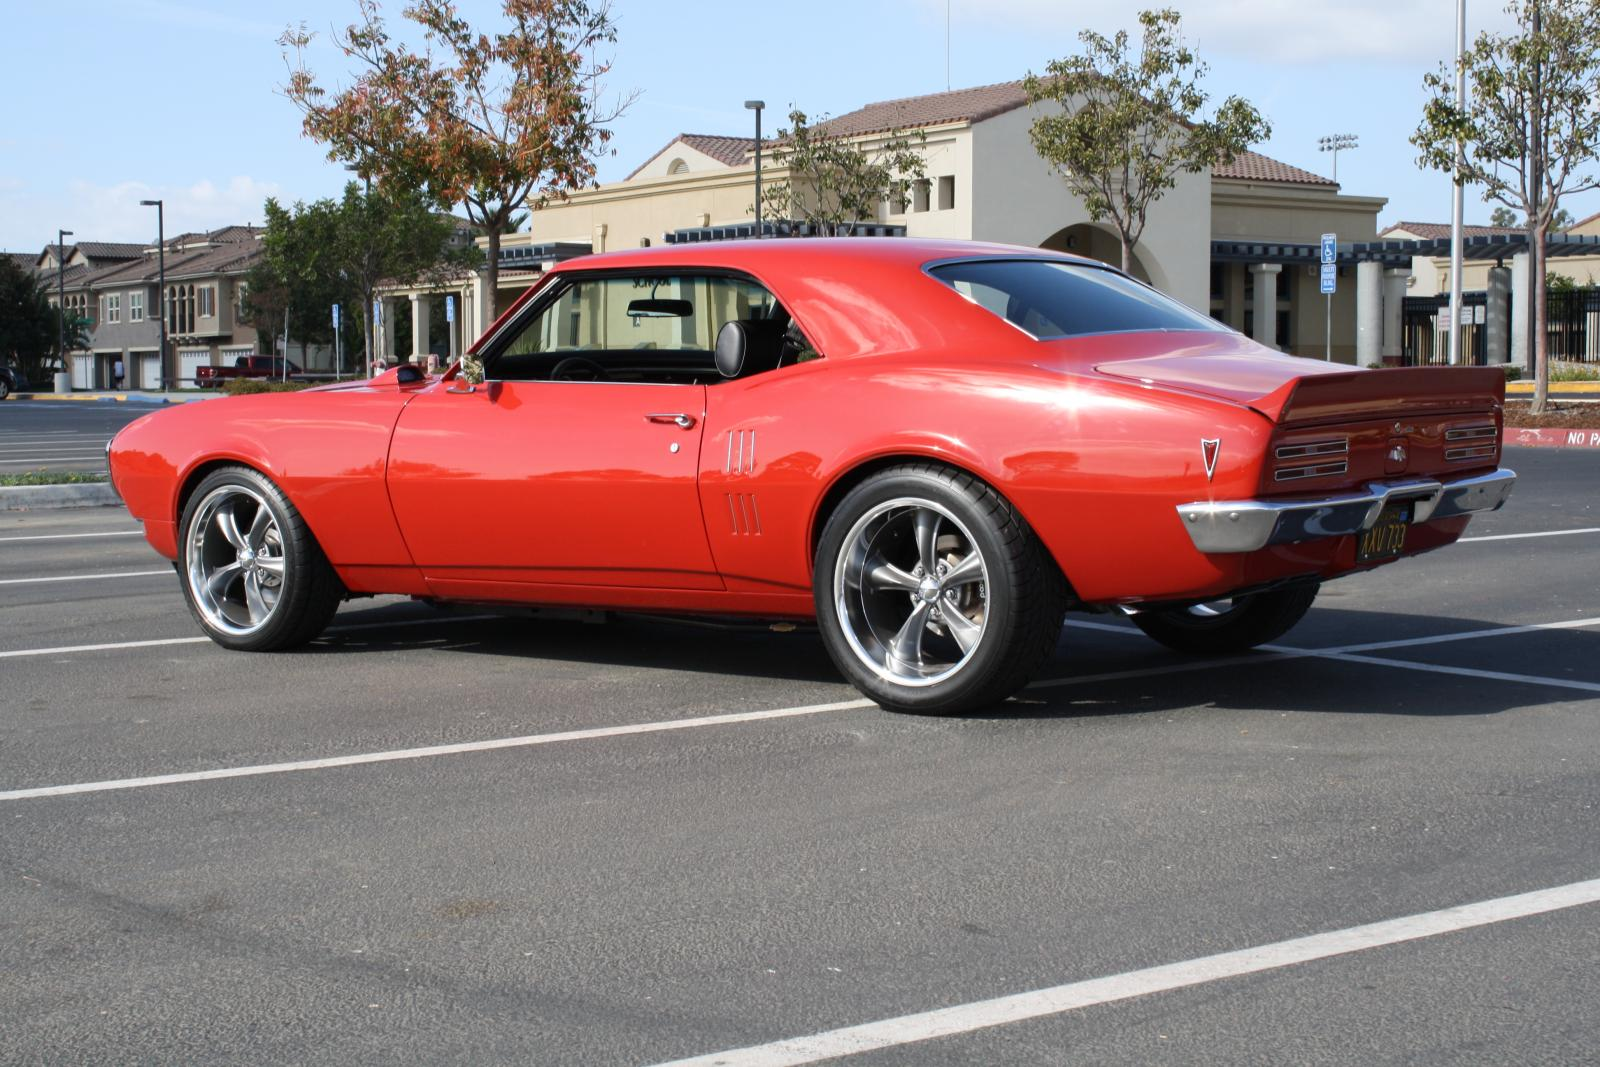 17 Quot Tire Size Advice For A 68 Firebird